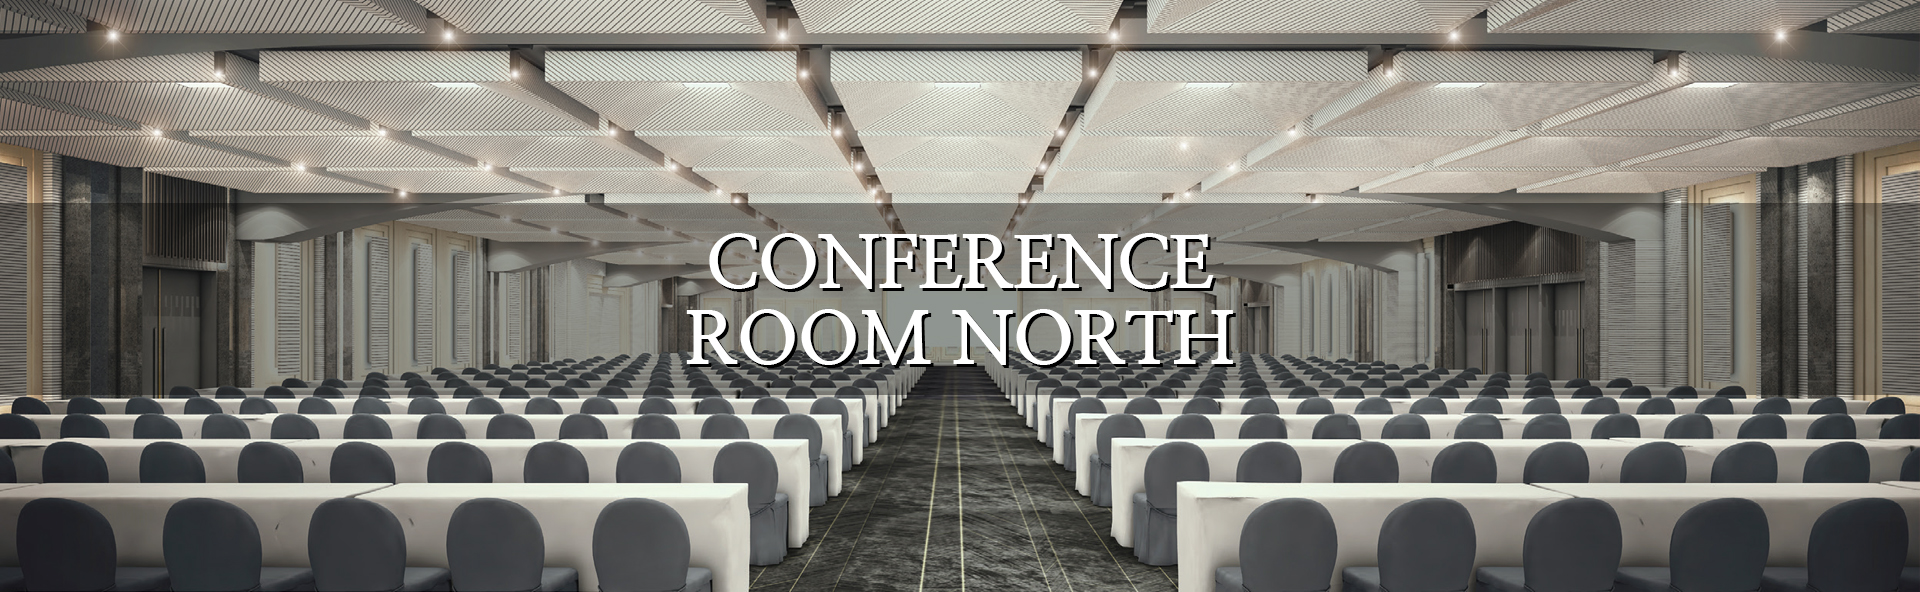 CONFERENCE ROOM NORTH 바로가기